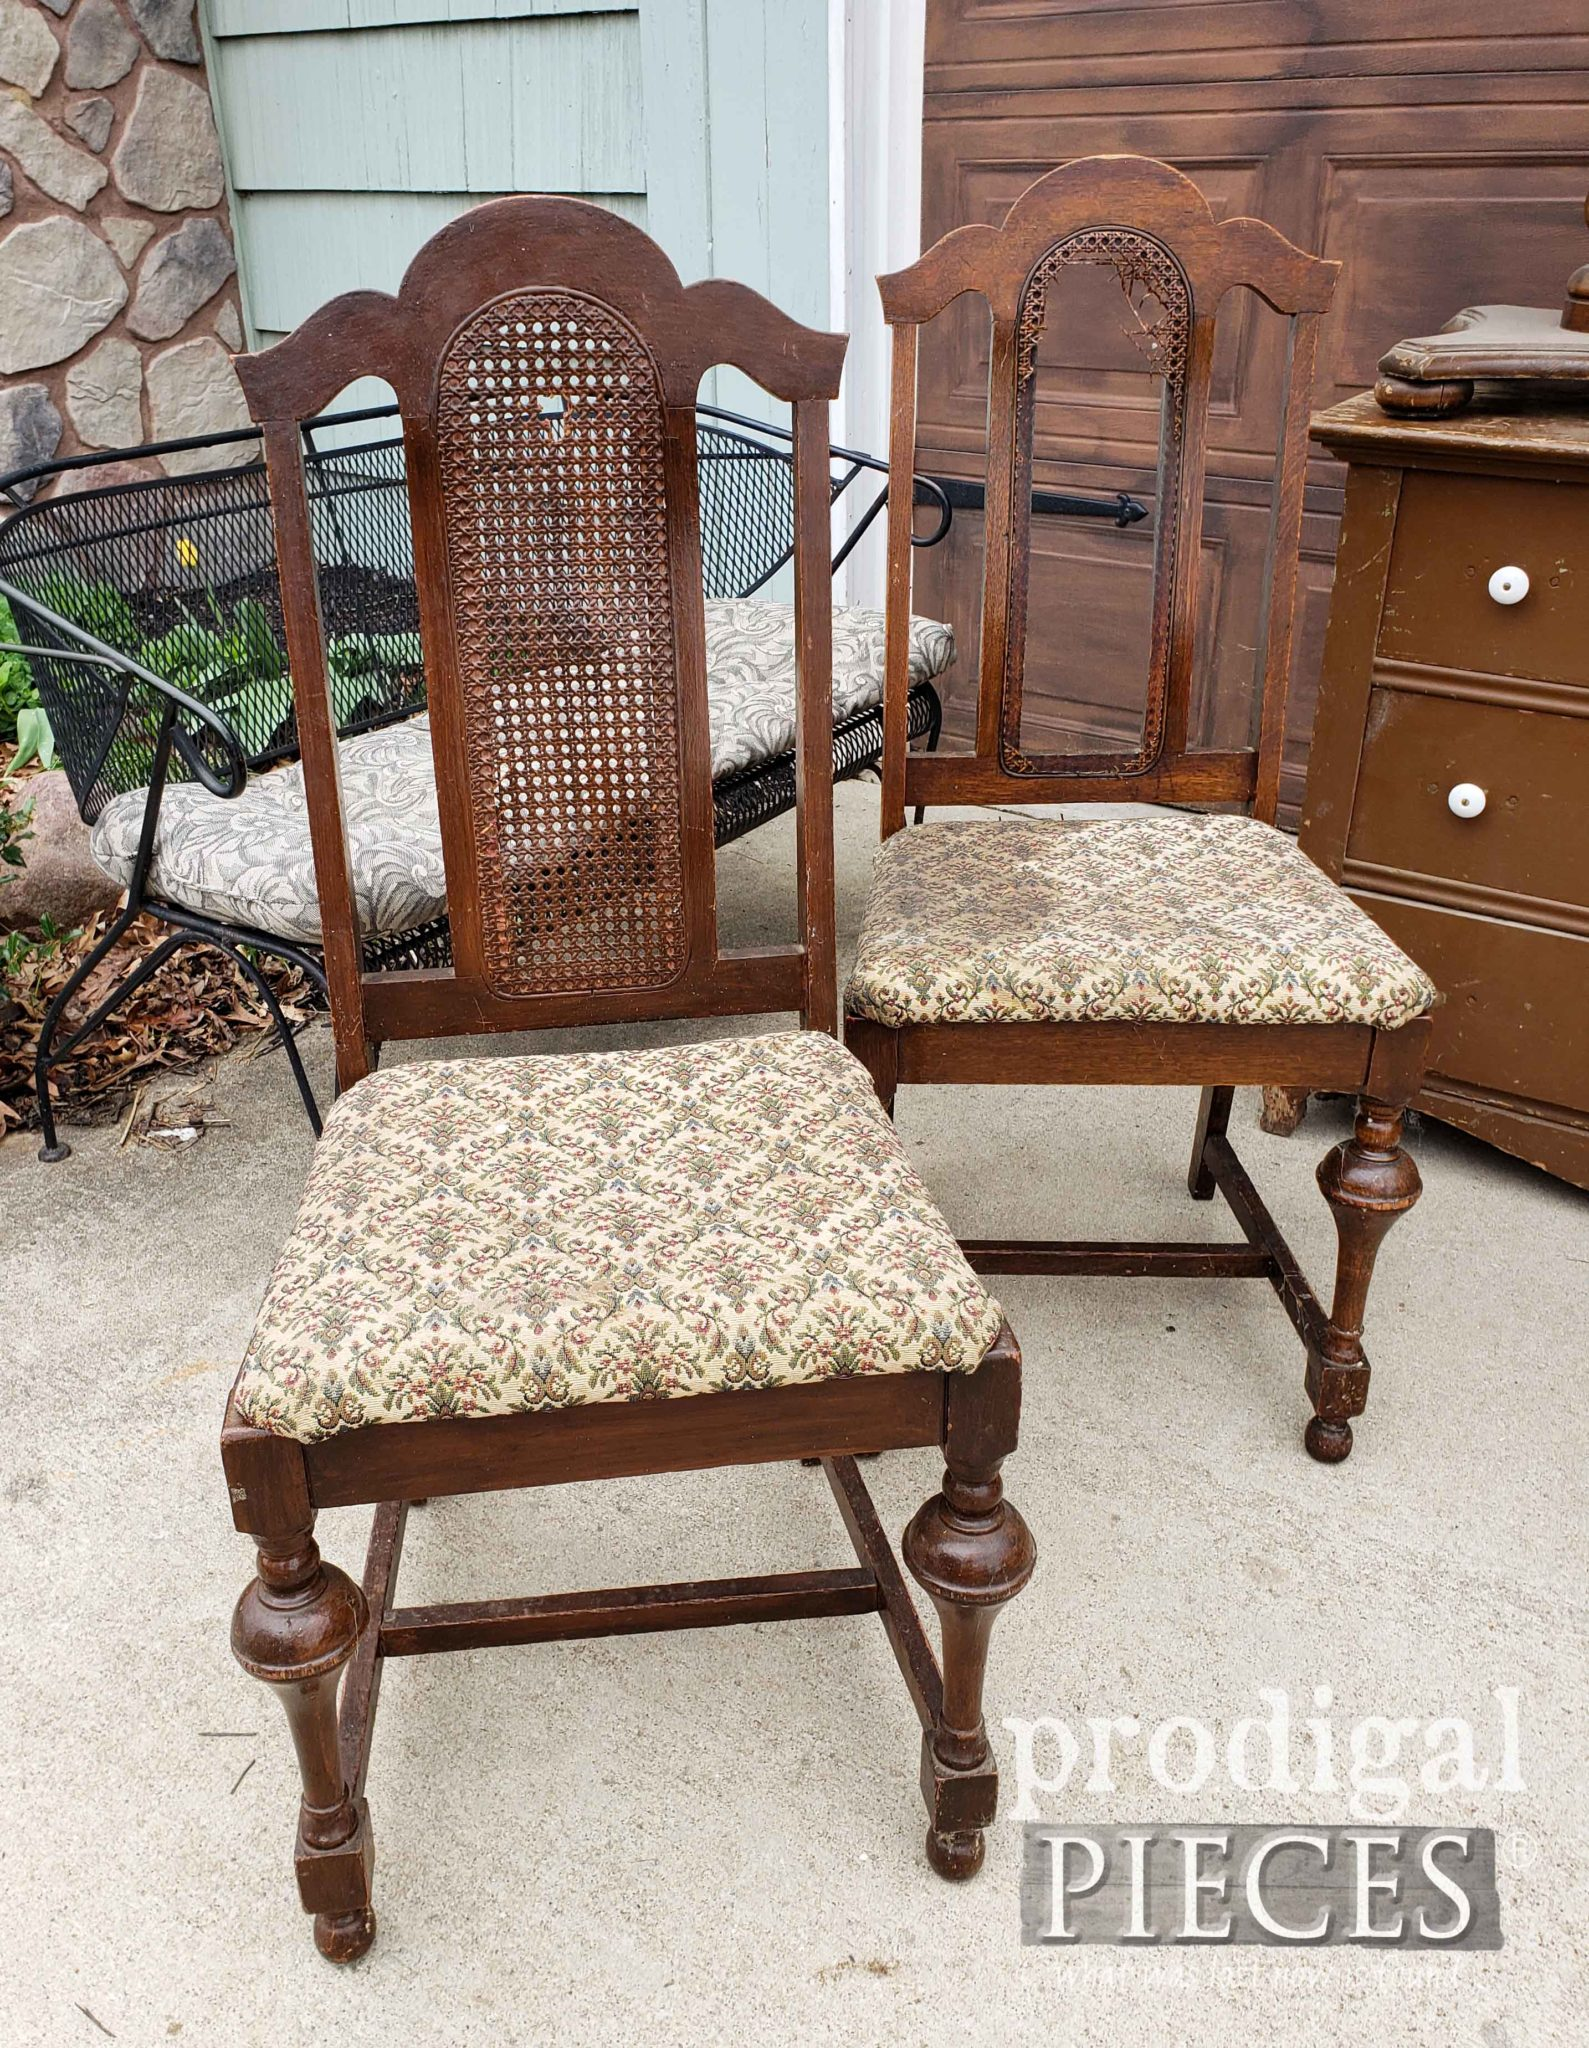 Curbside Antique Dining Chairs Set Out for Trash & Rescued by Larissa of Prodigal Pieces | prodigalpieces.com #prodigalpieces